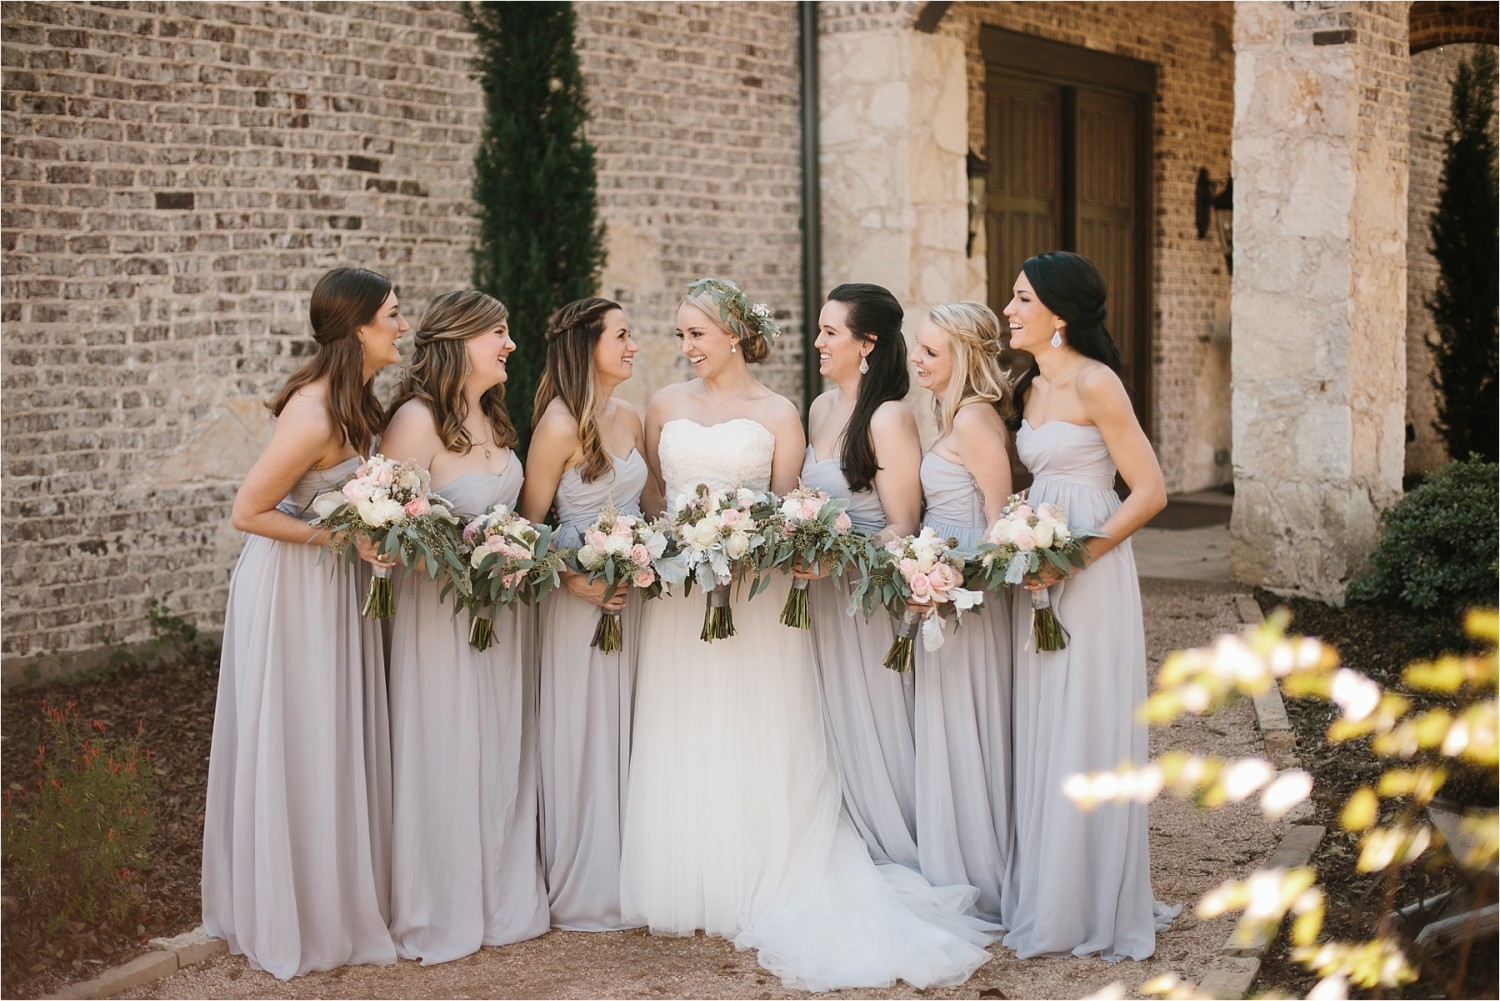 brad-lara-__-a-grey-and-blush-pink-intimate-wedding-at-hidden-waters-event-center-in-waxahachie-tx-by-north-texas-wedding-photographer-rachel-meagan-photography-_-020